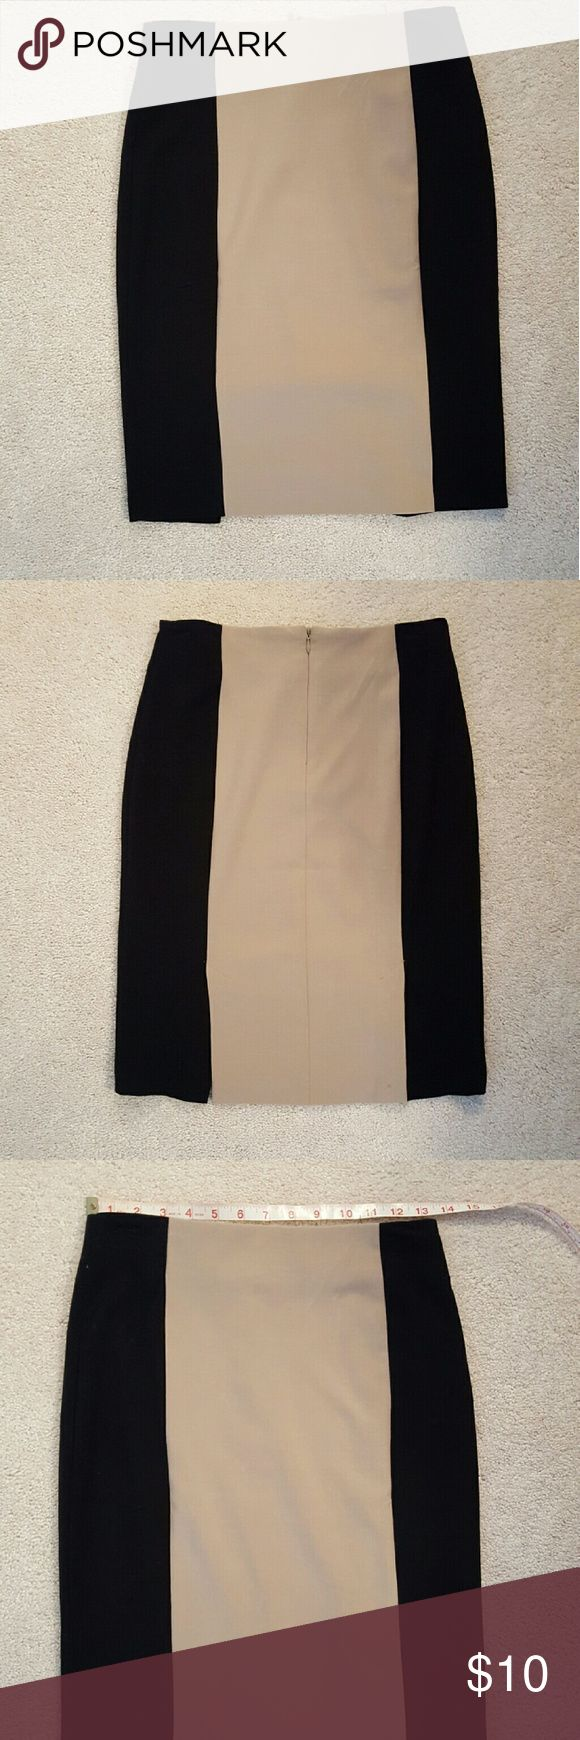 Black and tan pencil skirt Black and tan pencil skirt. Stretches to accentuate your curves. Very flattering. Looks great with a simple tank and statement necklace. Skirts Pencil